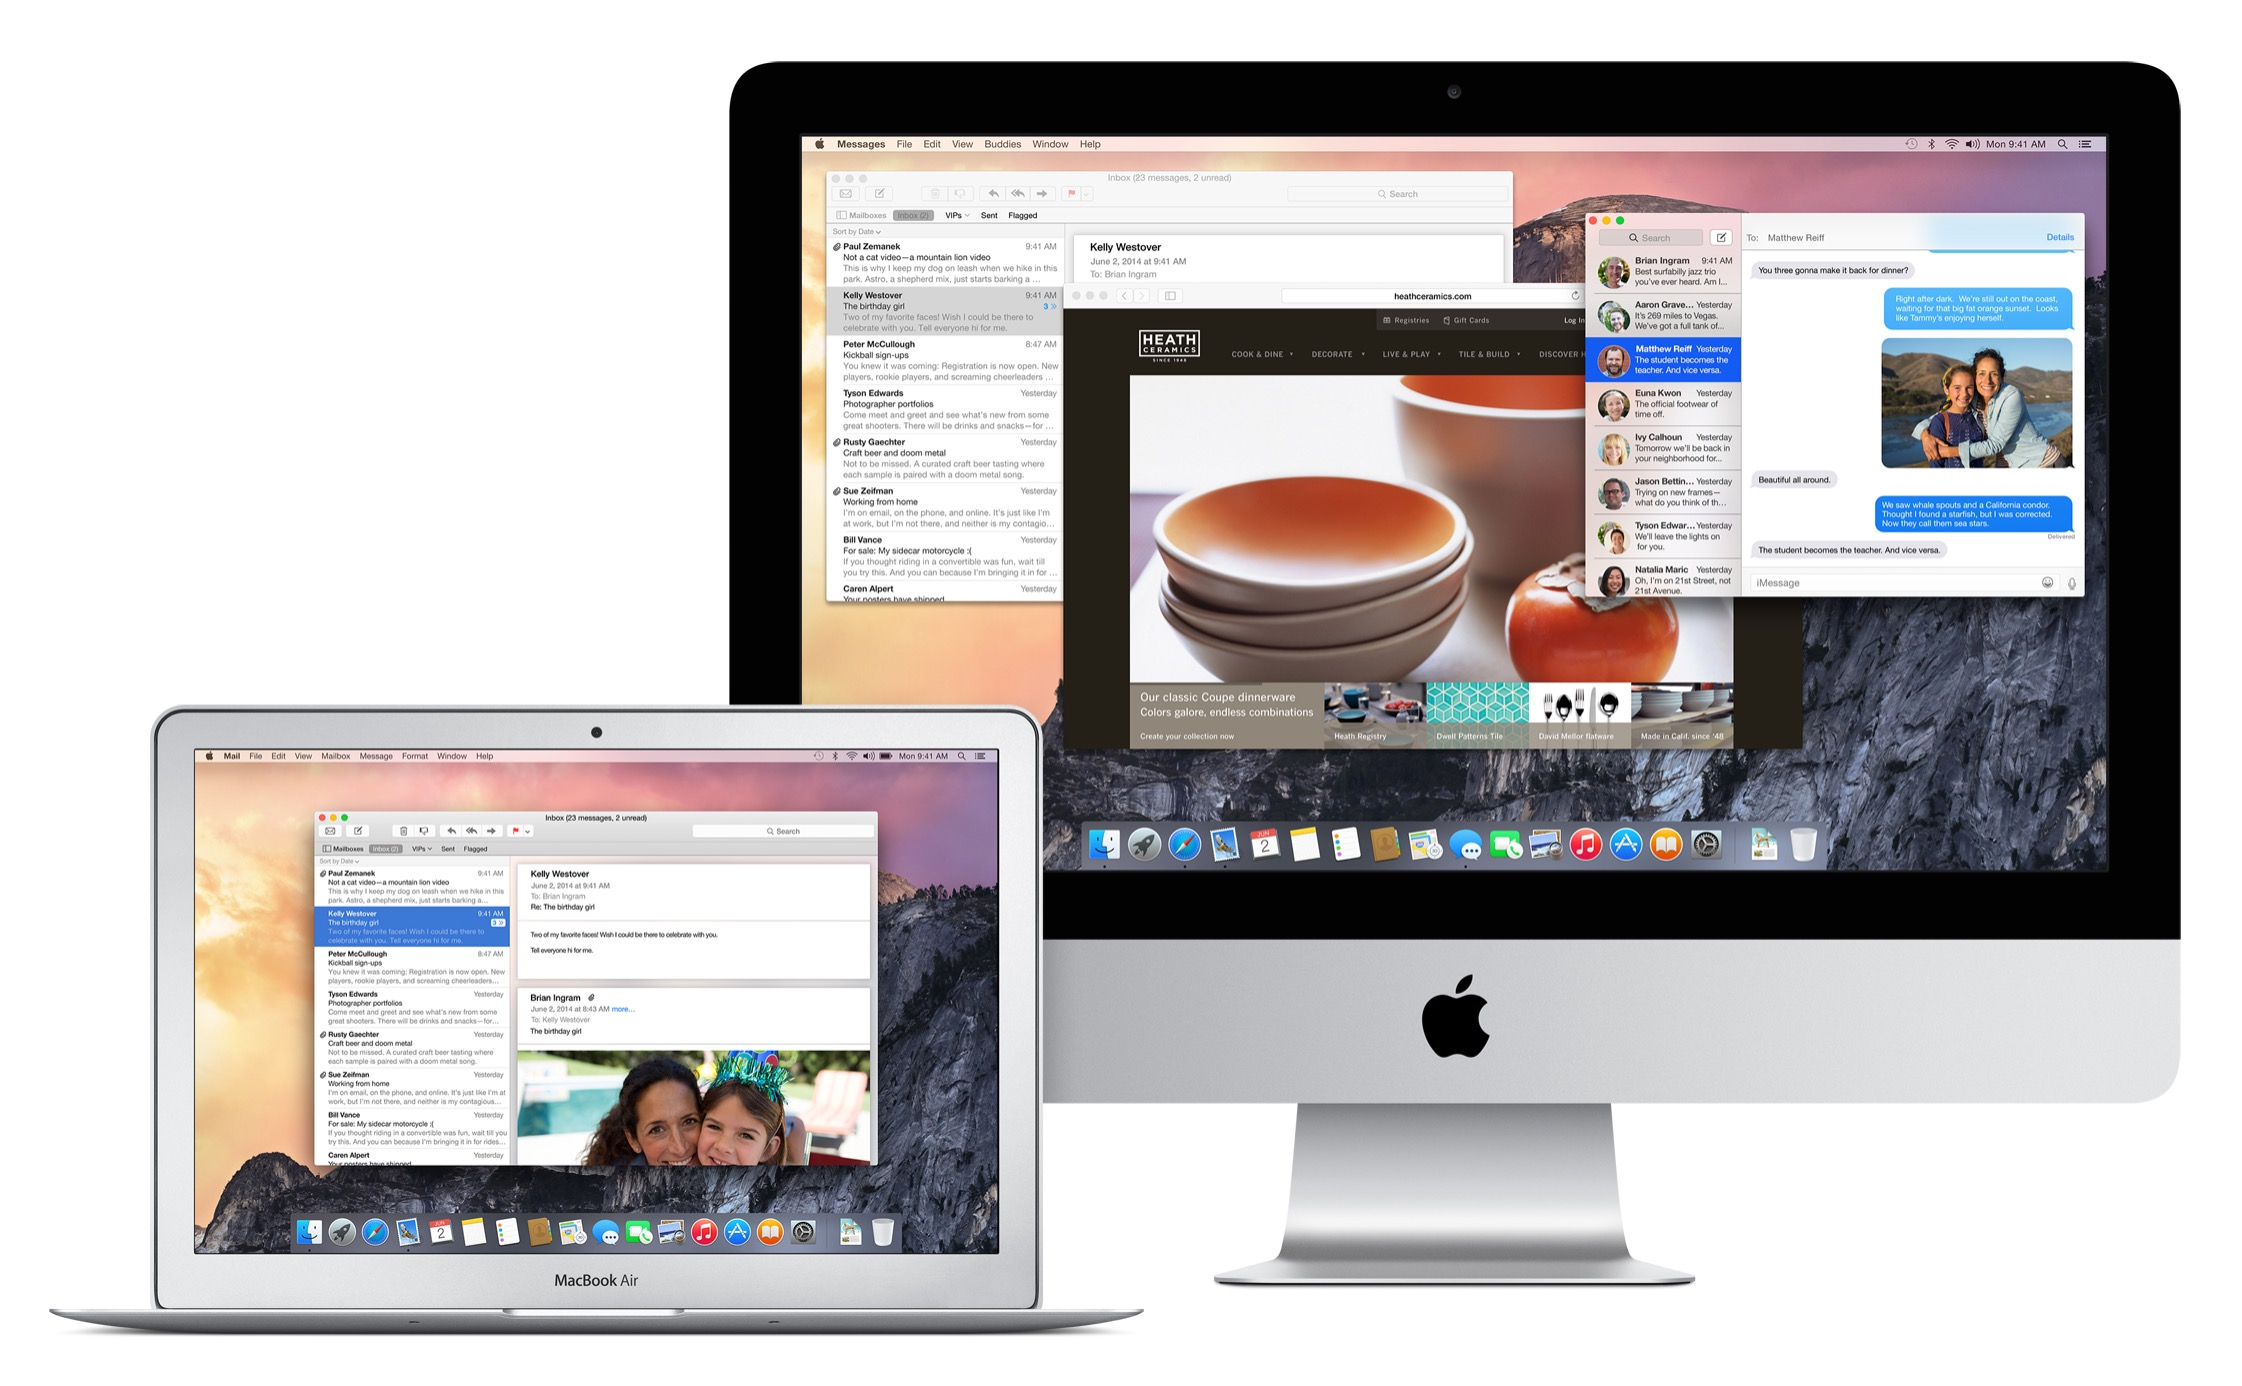 OS X 10.10.3 beta and Photos.app for OS X beta is now free to download